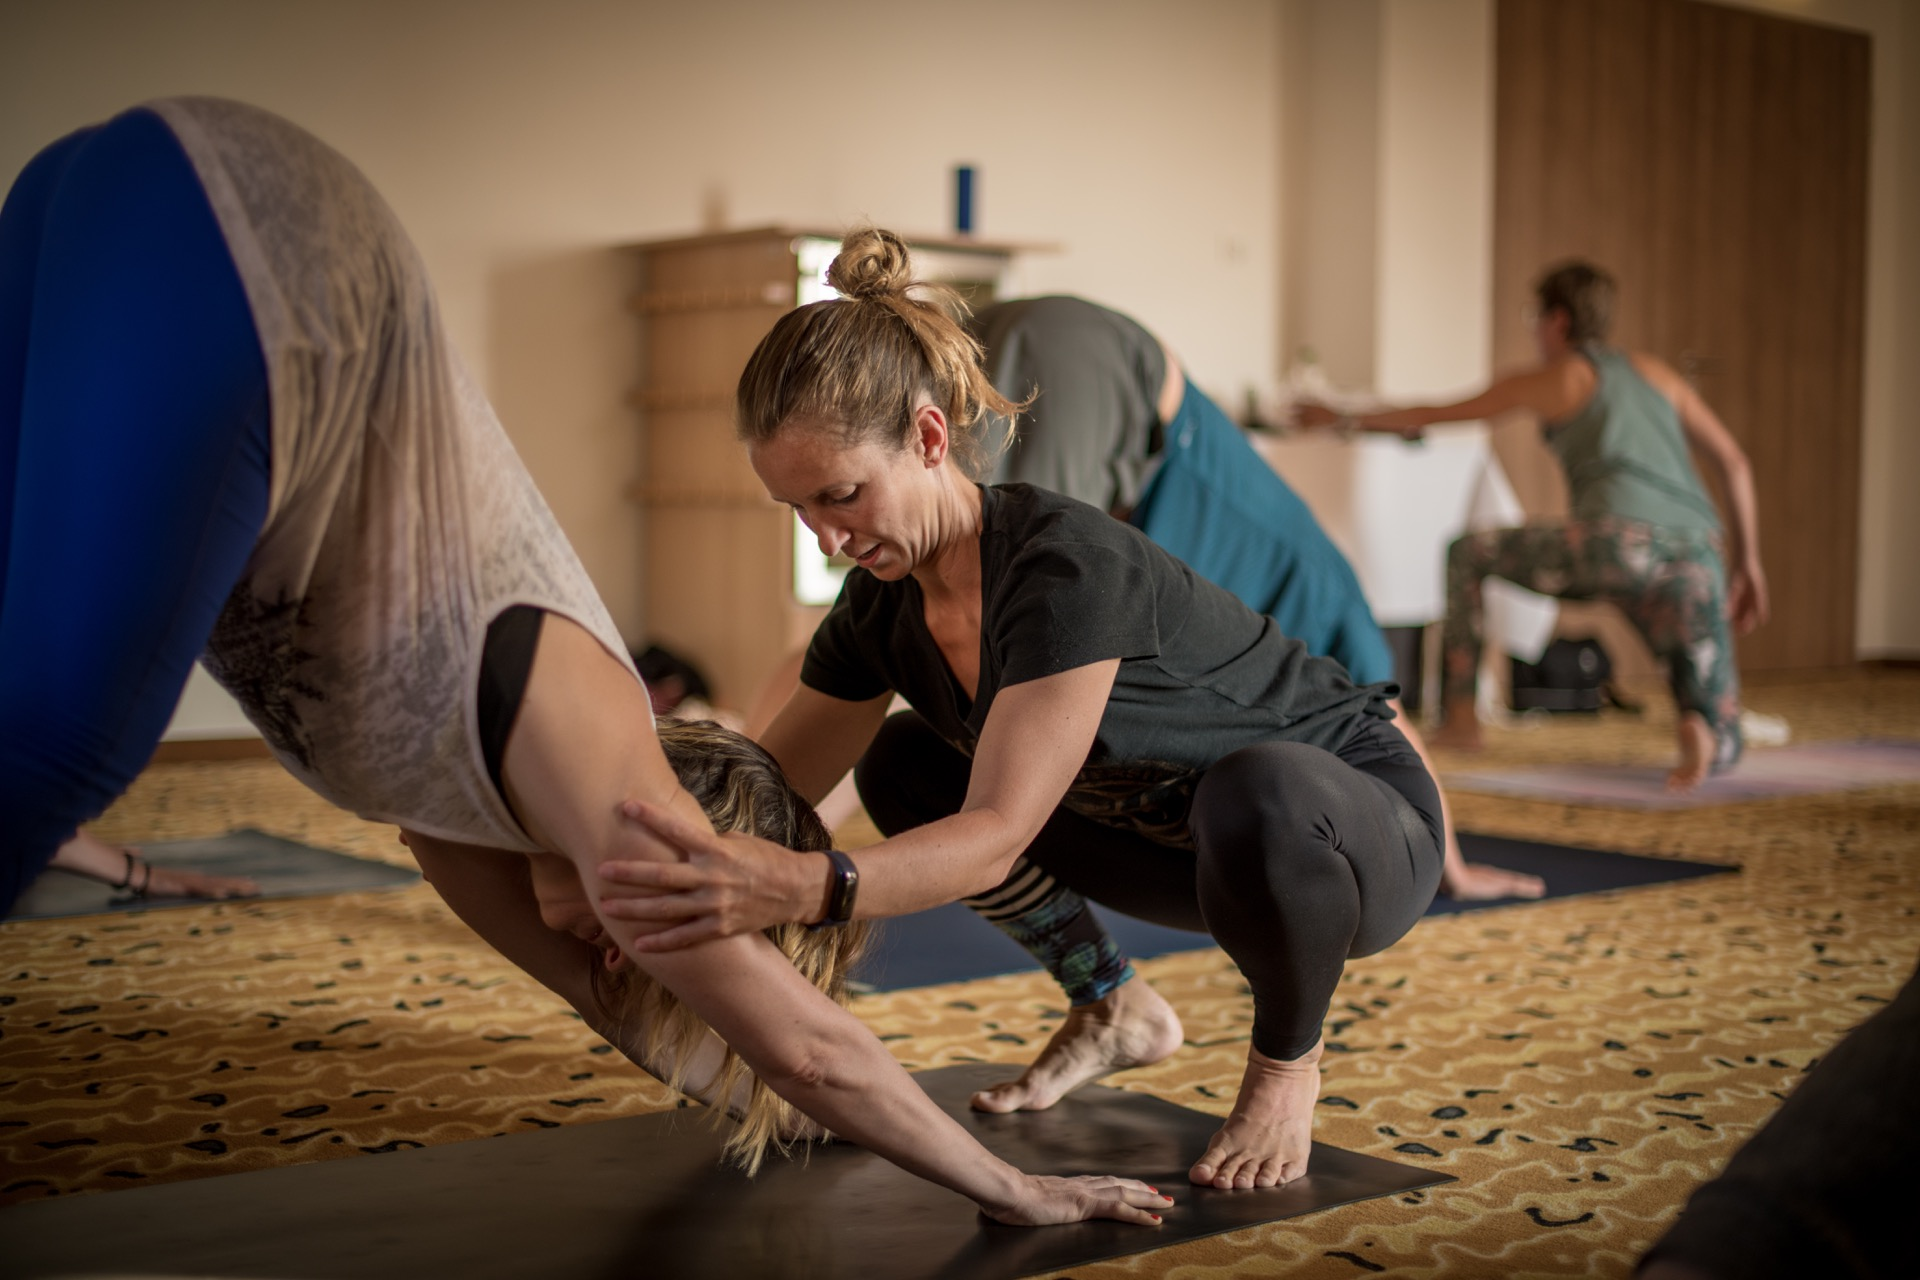 Hie-Kim-Friends-2019-Yoga-Retreat-Alina-Matis-Photography-023 - Hie Kim Yoga - Yoga Retreat - Yoga Workshops und Reisen